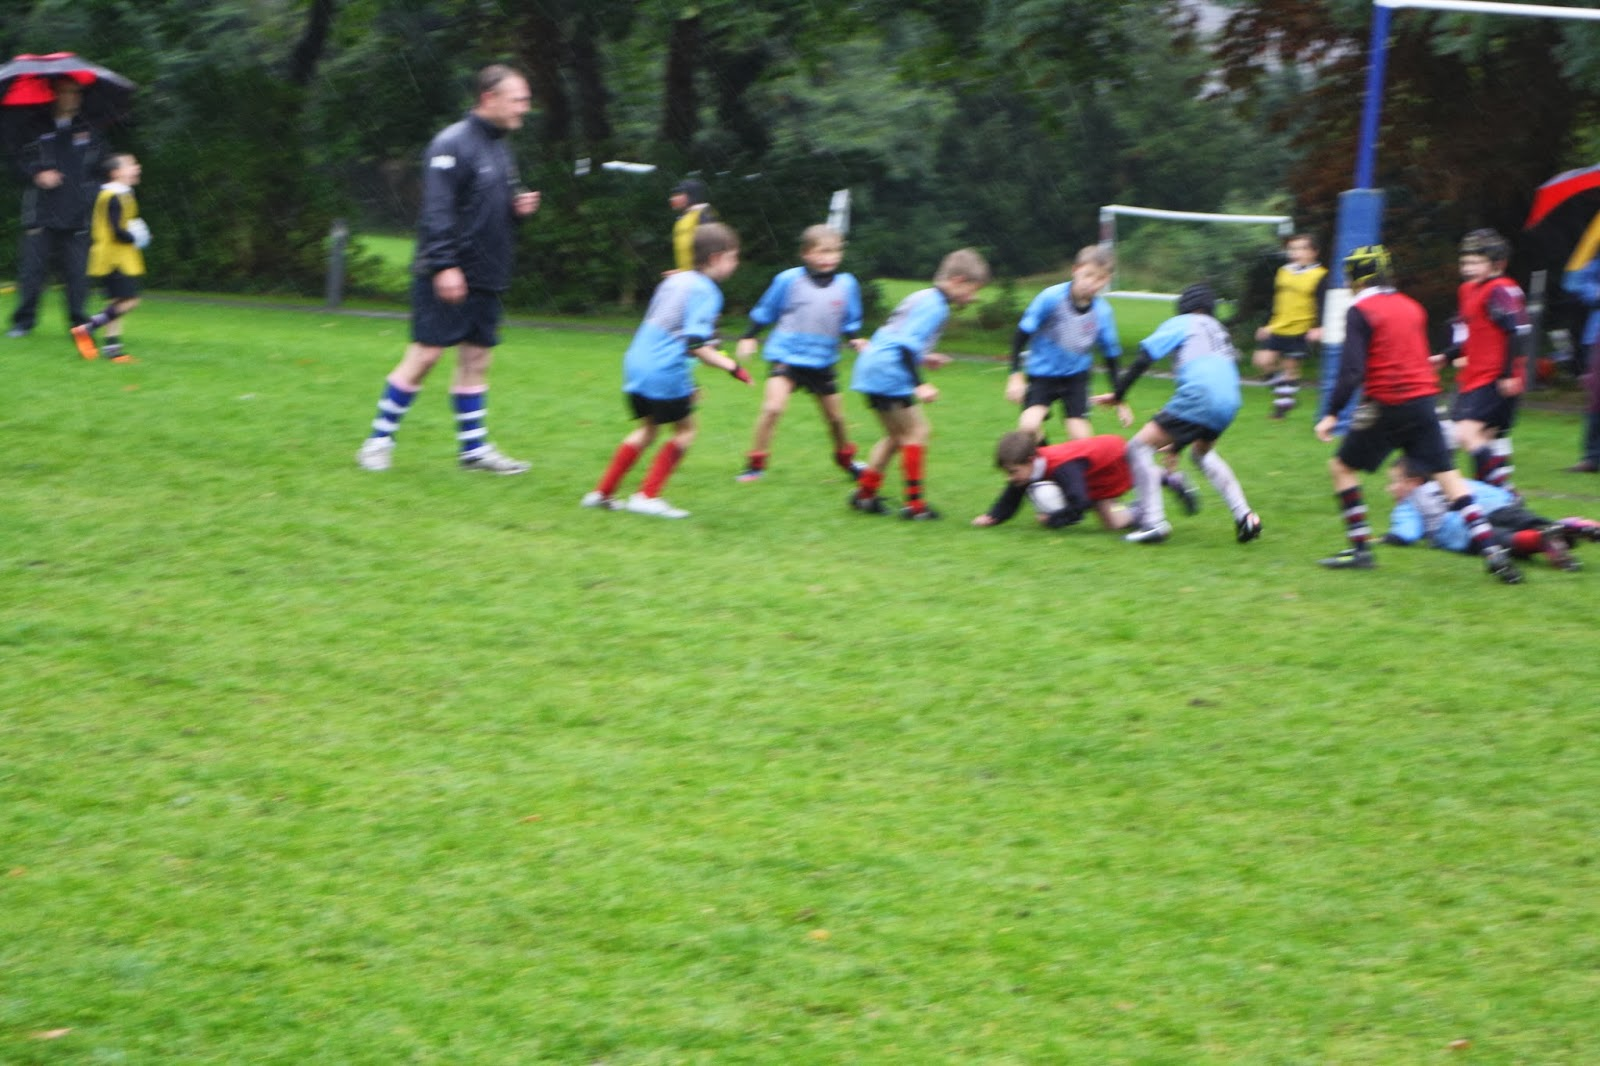 Son-rugby-sport-cold-rain